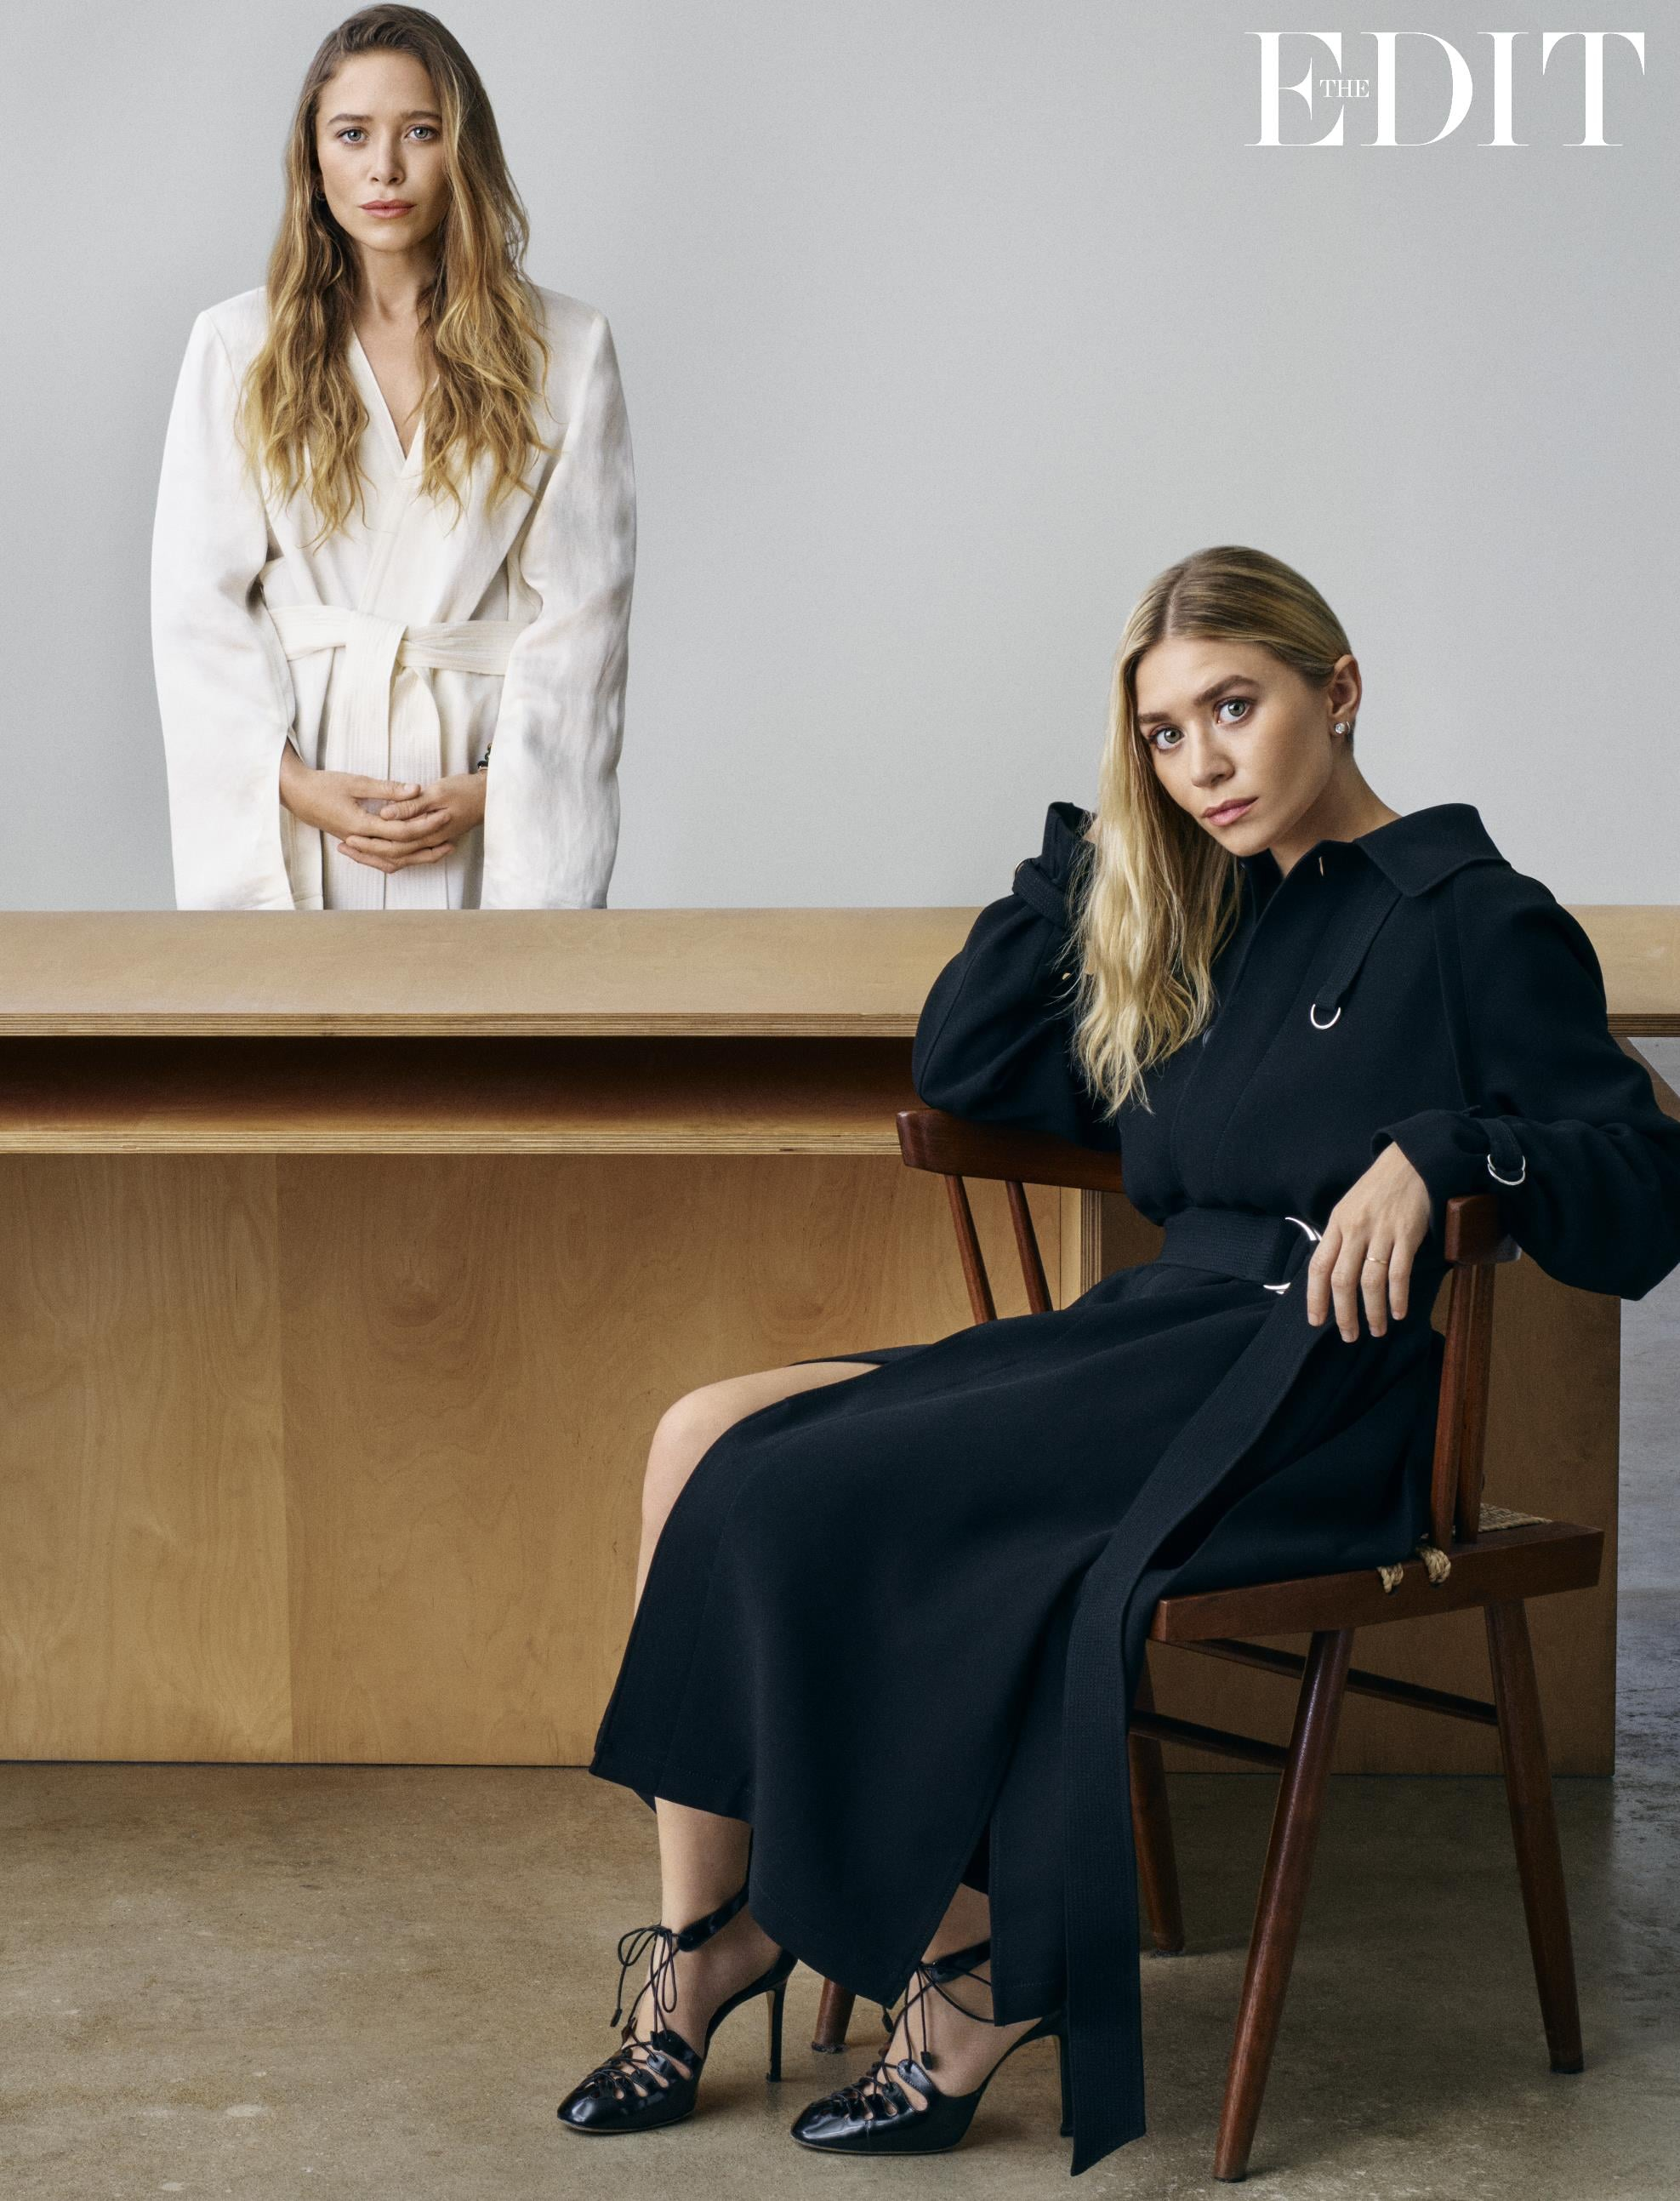 Mary Kate And Ashley Olsen The Edit Interview March 2017